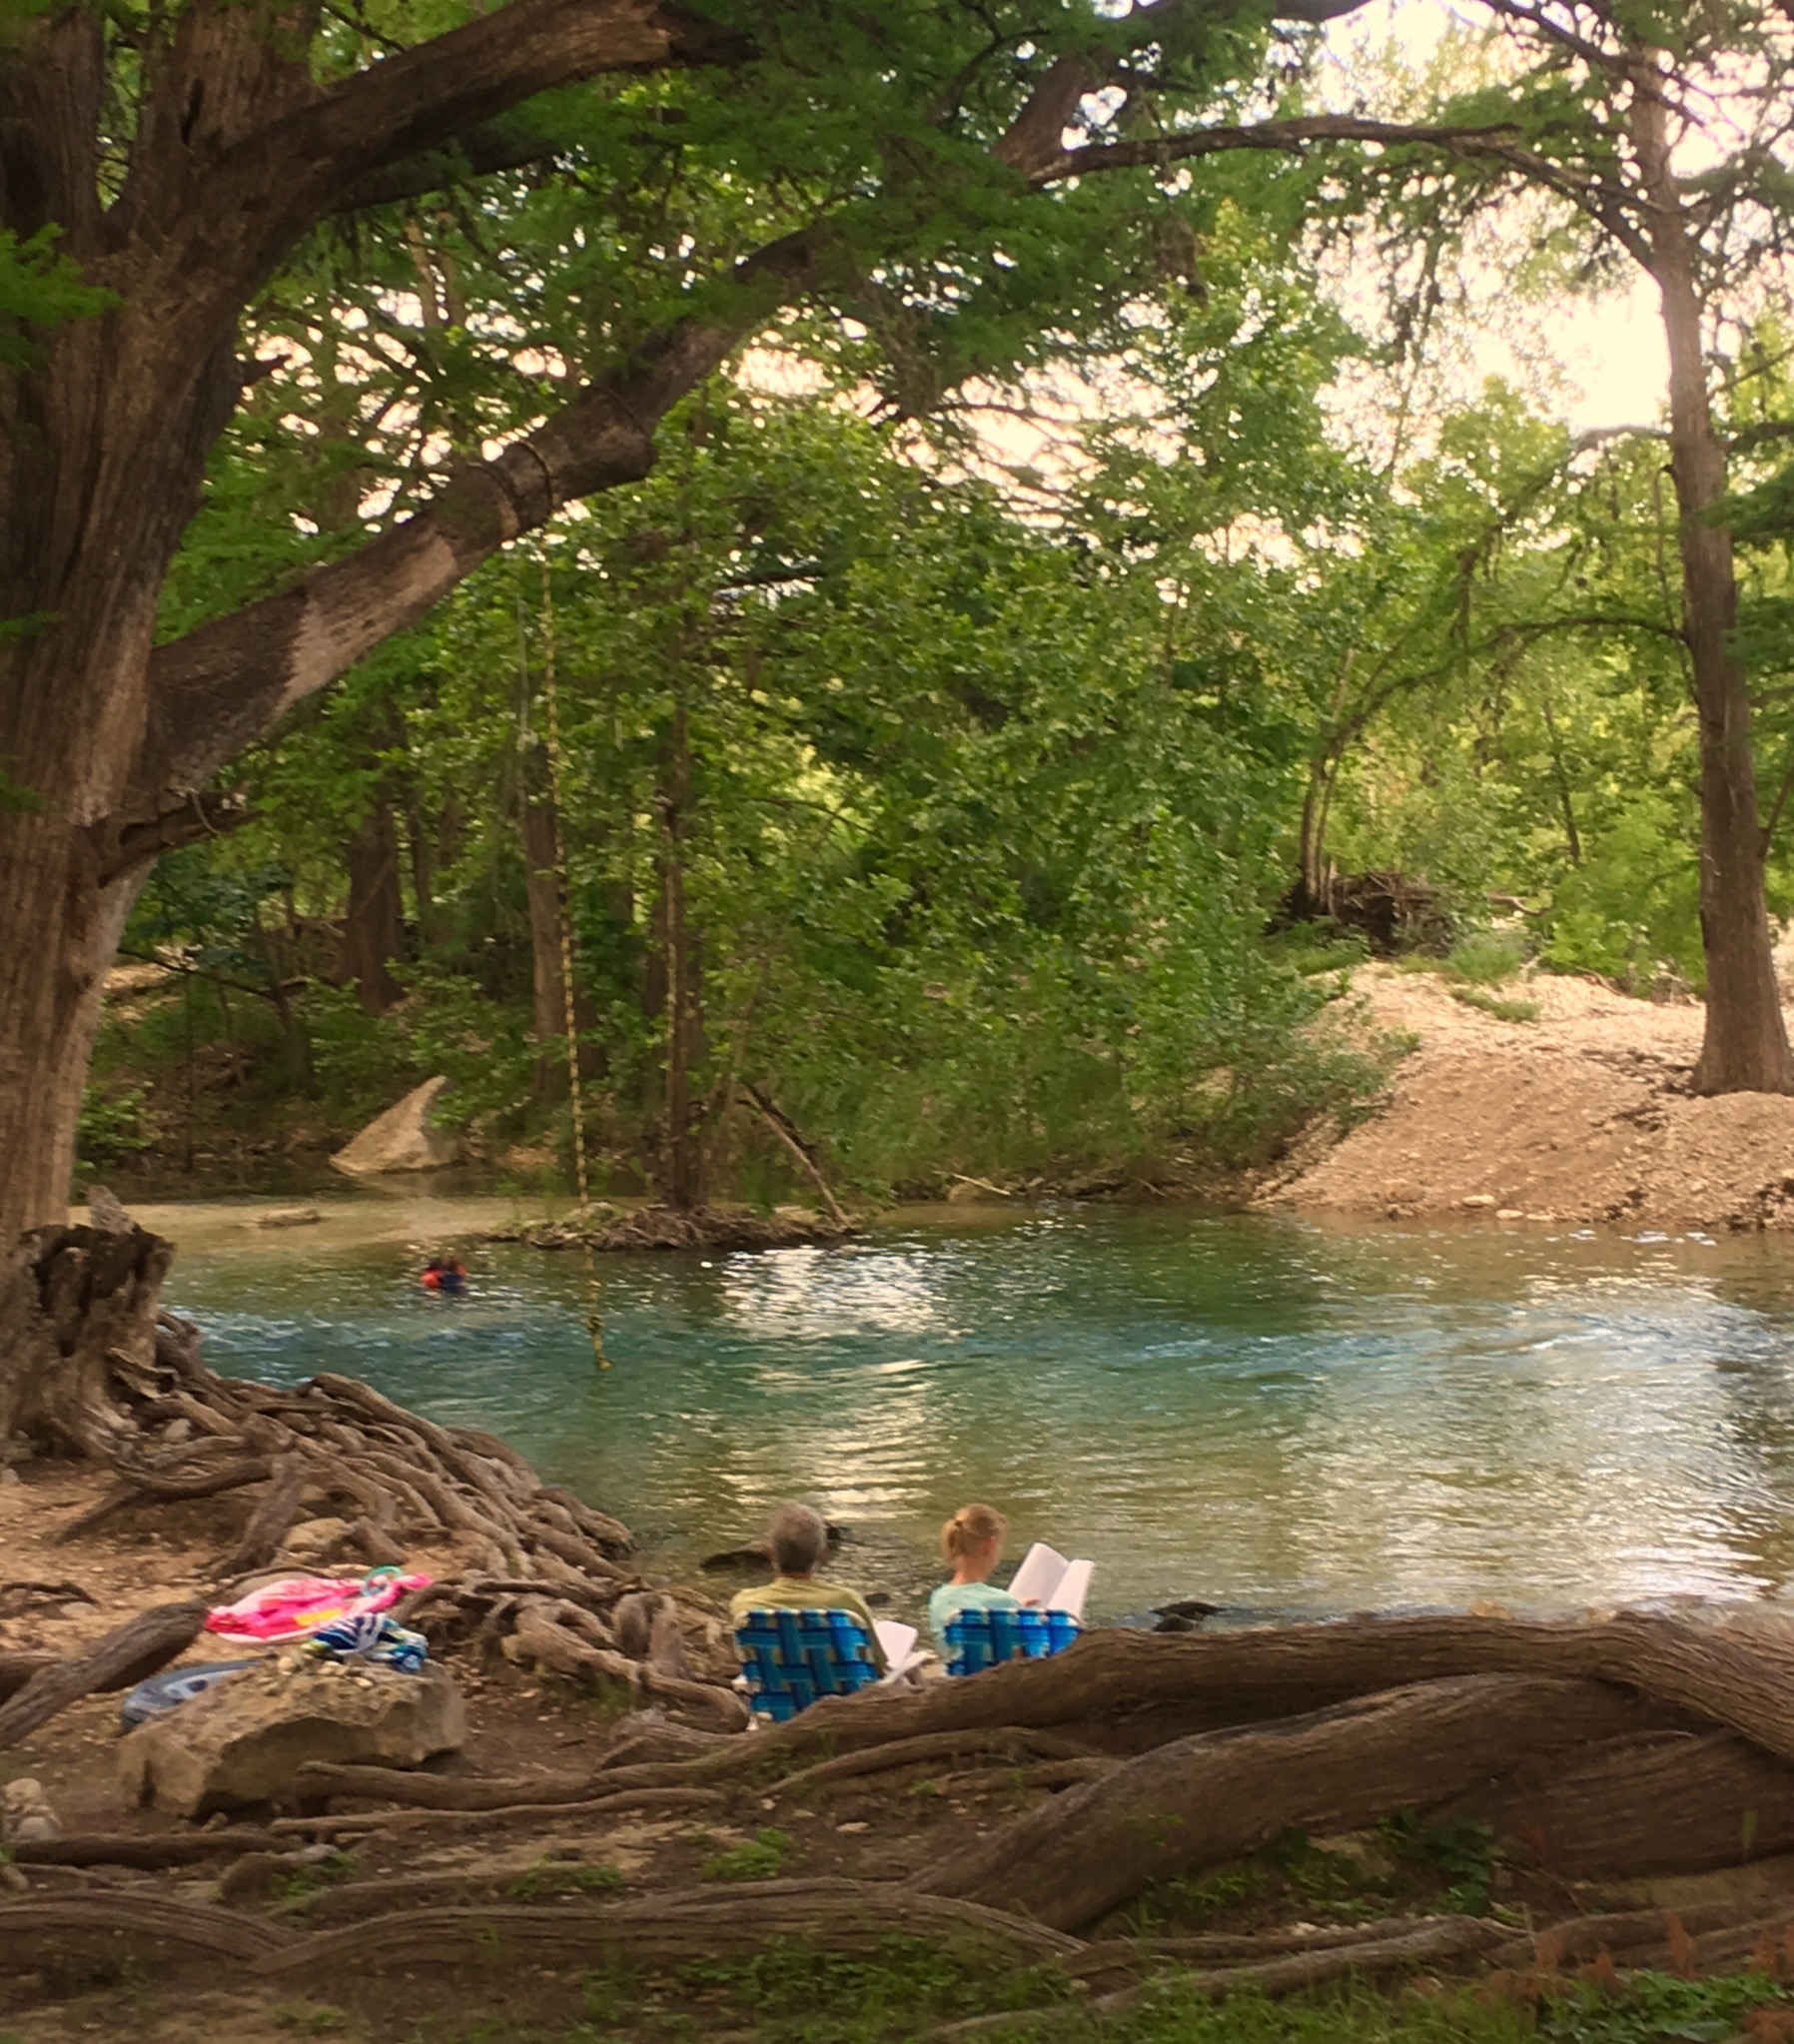 Hill Country RV Oasis - Vacation Rental RVs in Utopia, TX